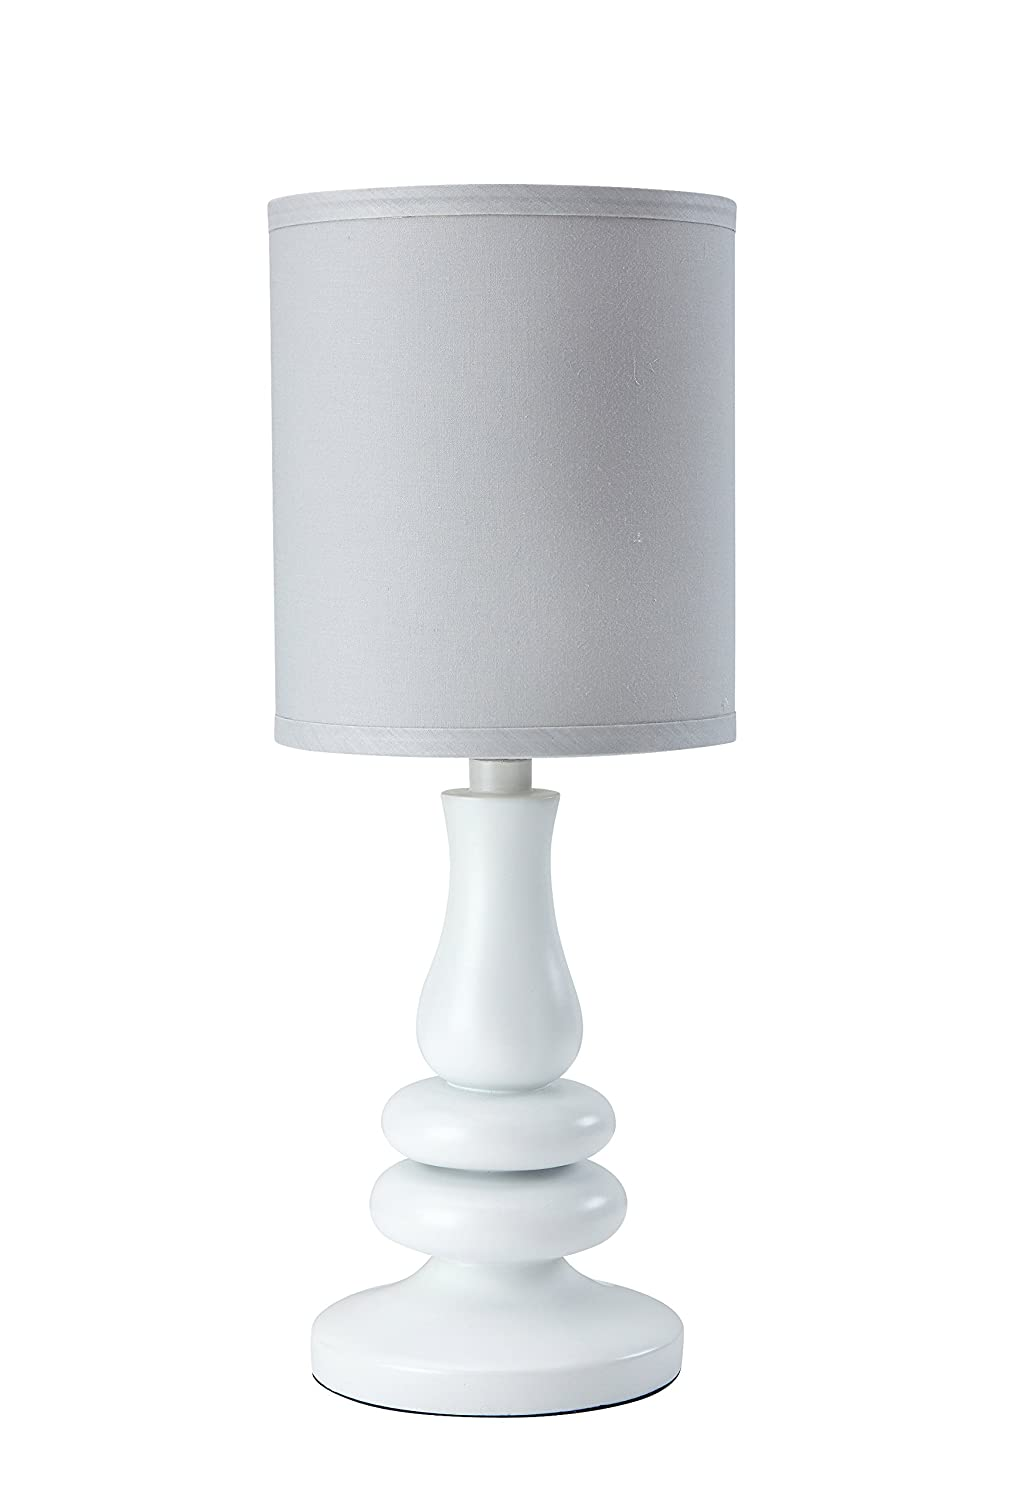 NoJo Lamp and Shade Discontinued by Manufacturer Zambia